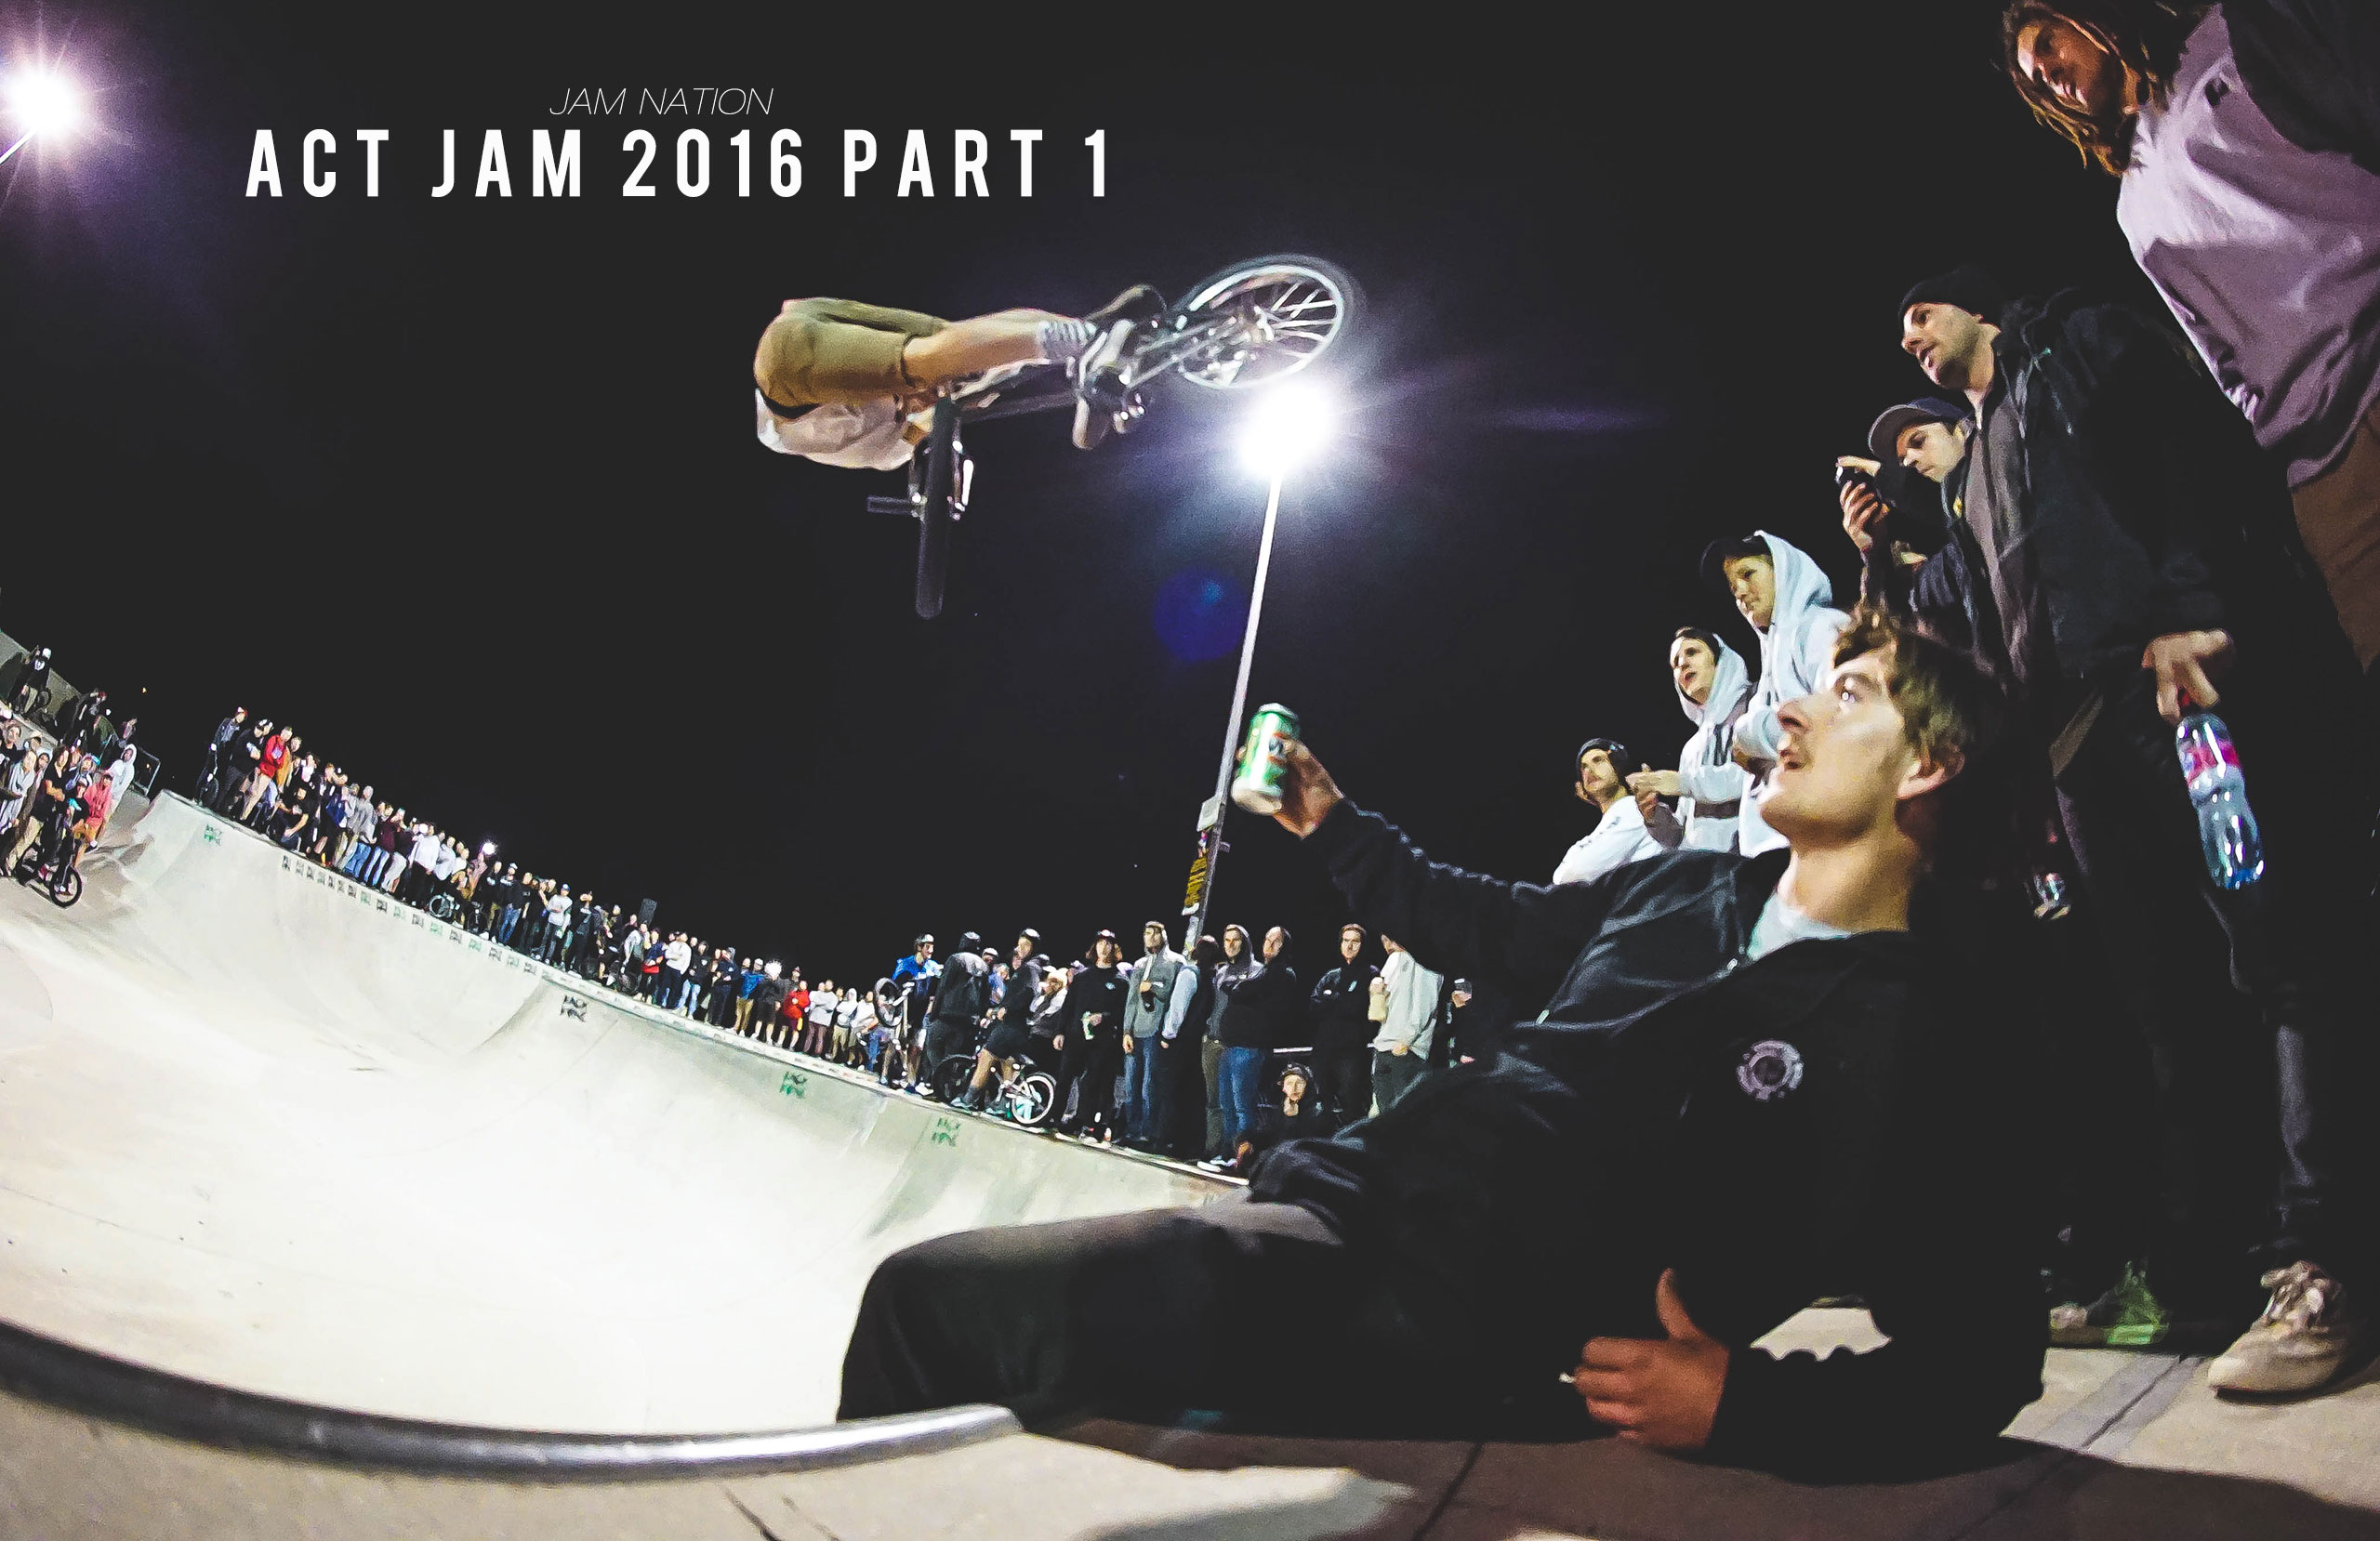 JAM NATION / ACTJAM 2016 / PART 1